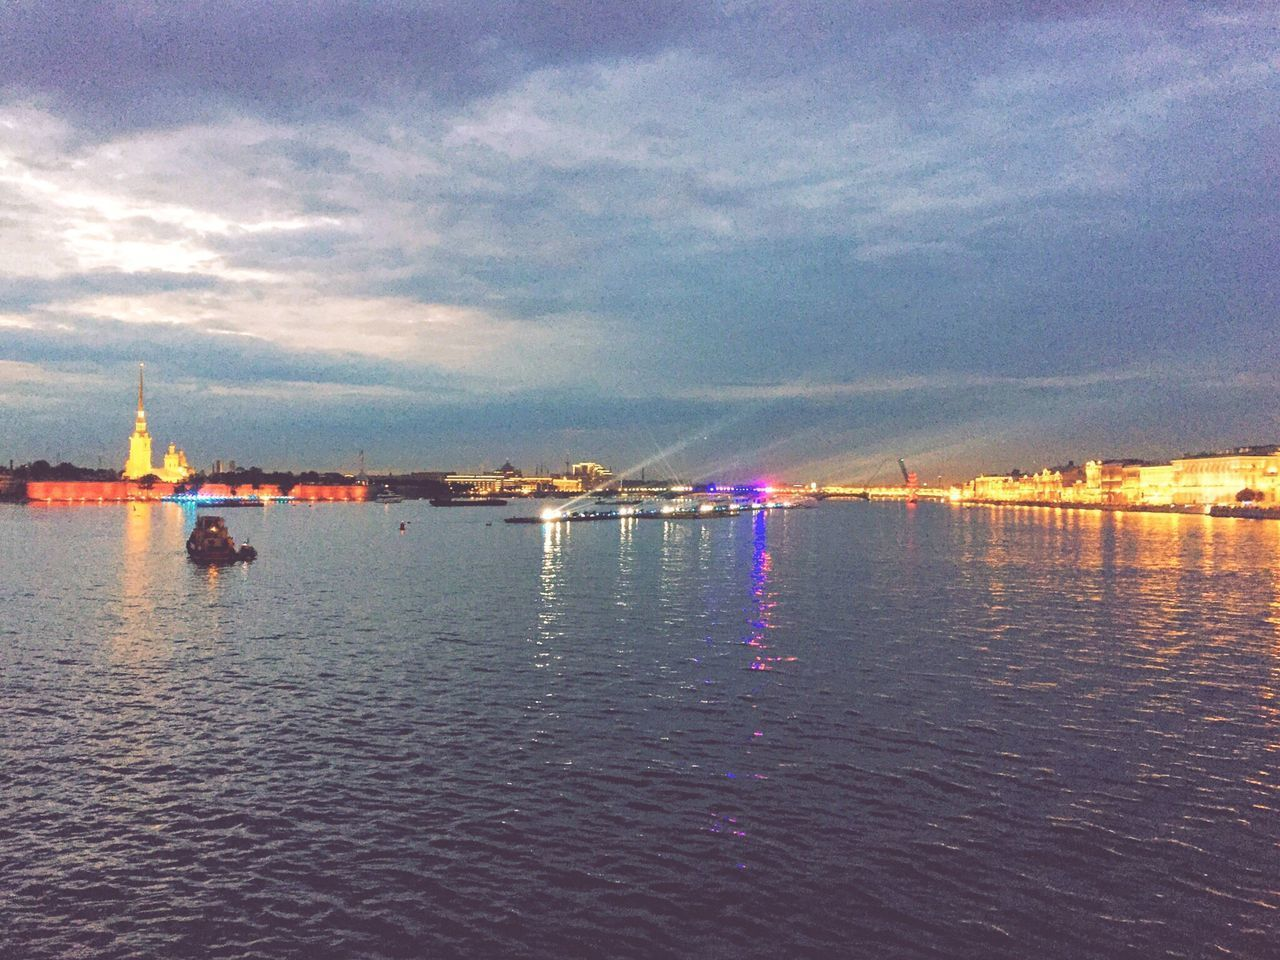 sky, cloud - sky, water, illuminated, outdoors, waterfront, reflection, built structure, sea, architecture, building exterior, nautical vessel, scenics, nature, beauty in nature, no people, travel destinations, sunset, night